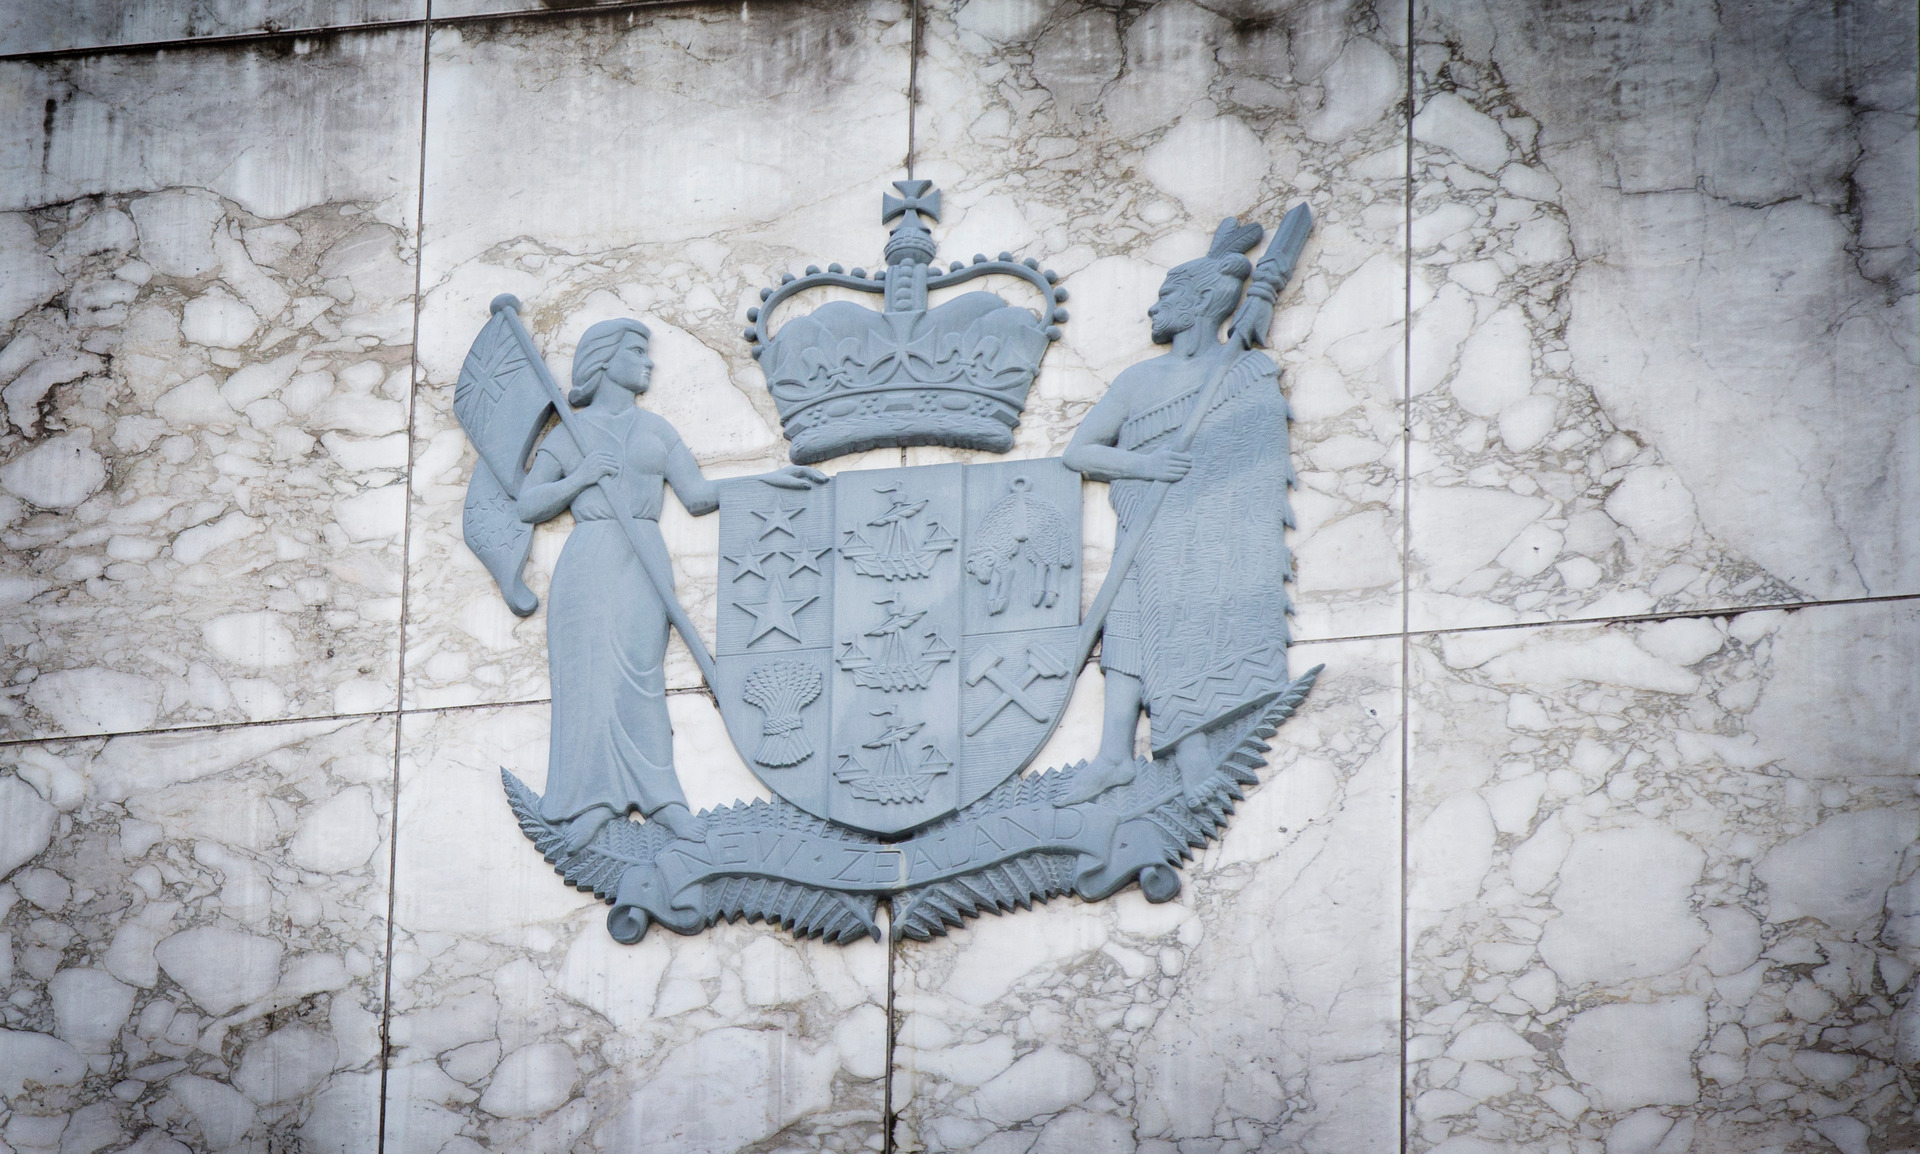 Central Otago mum convicted of assault after using force to discipline her son